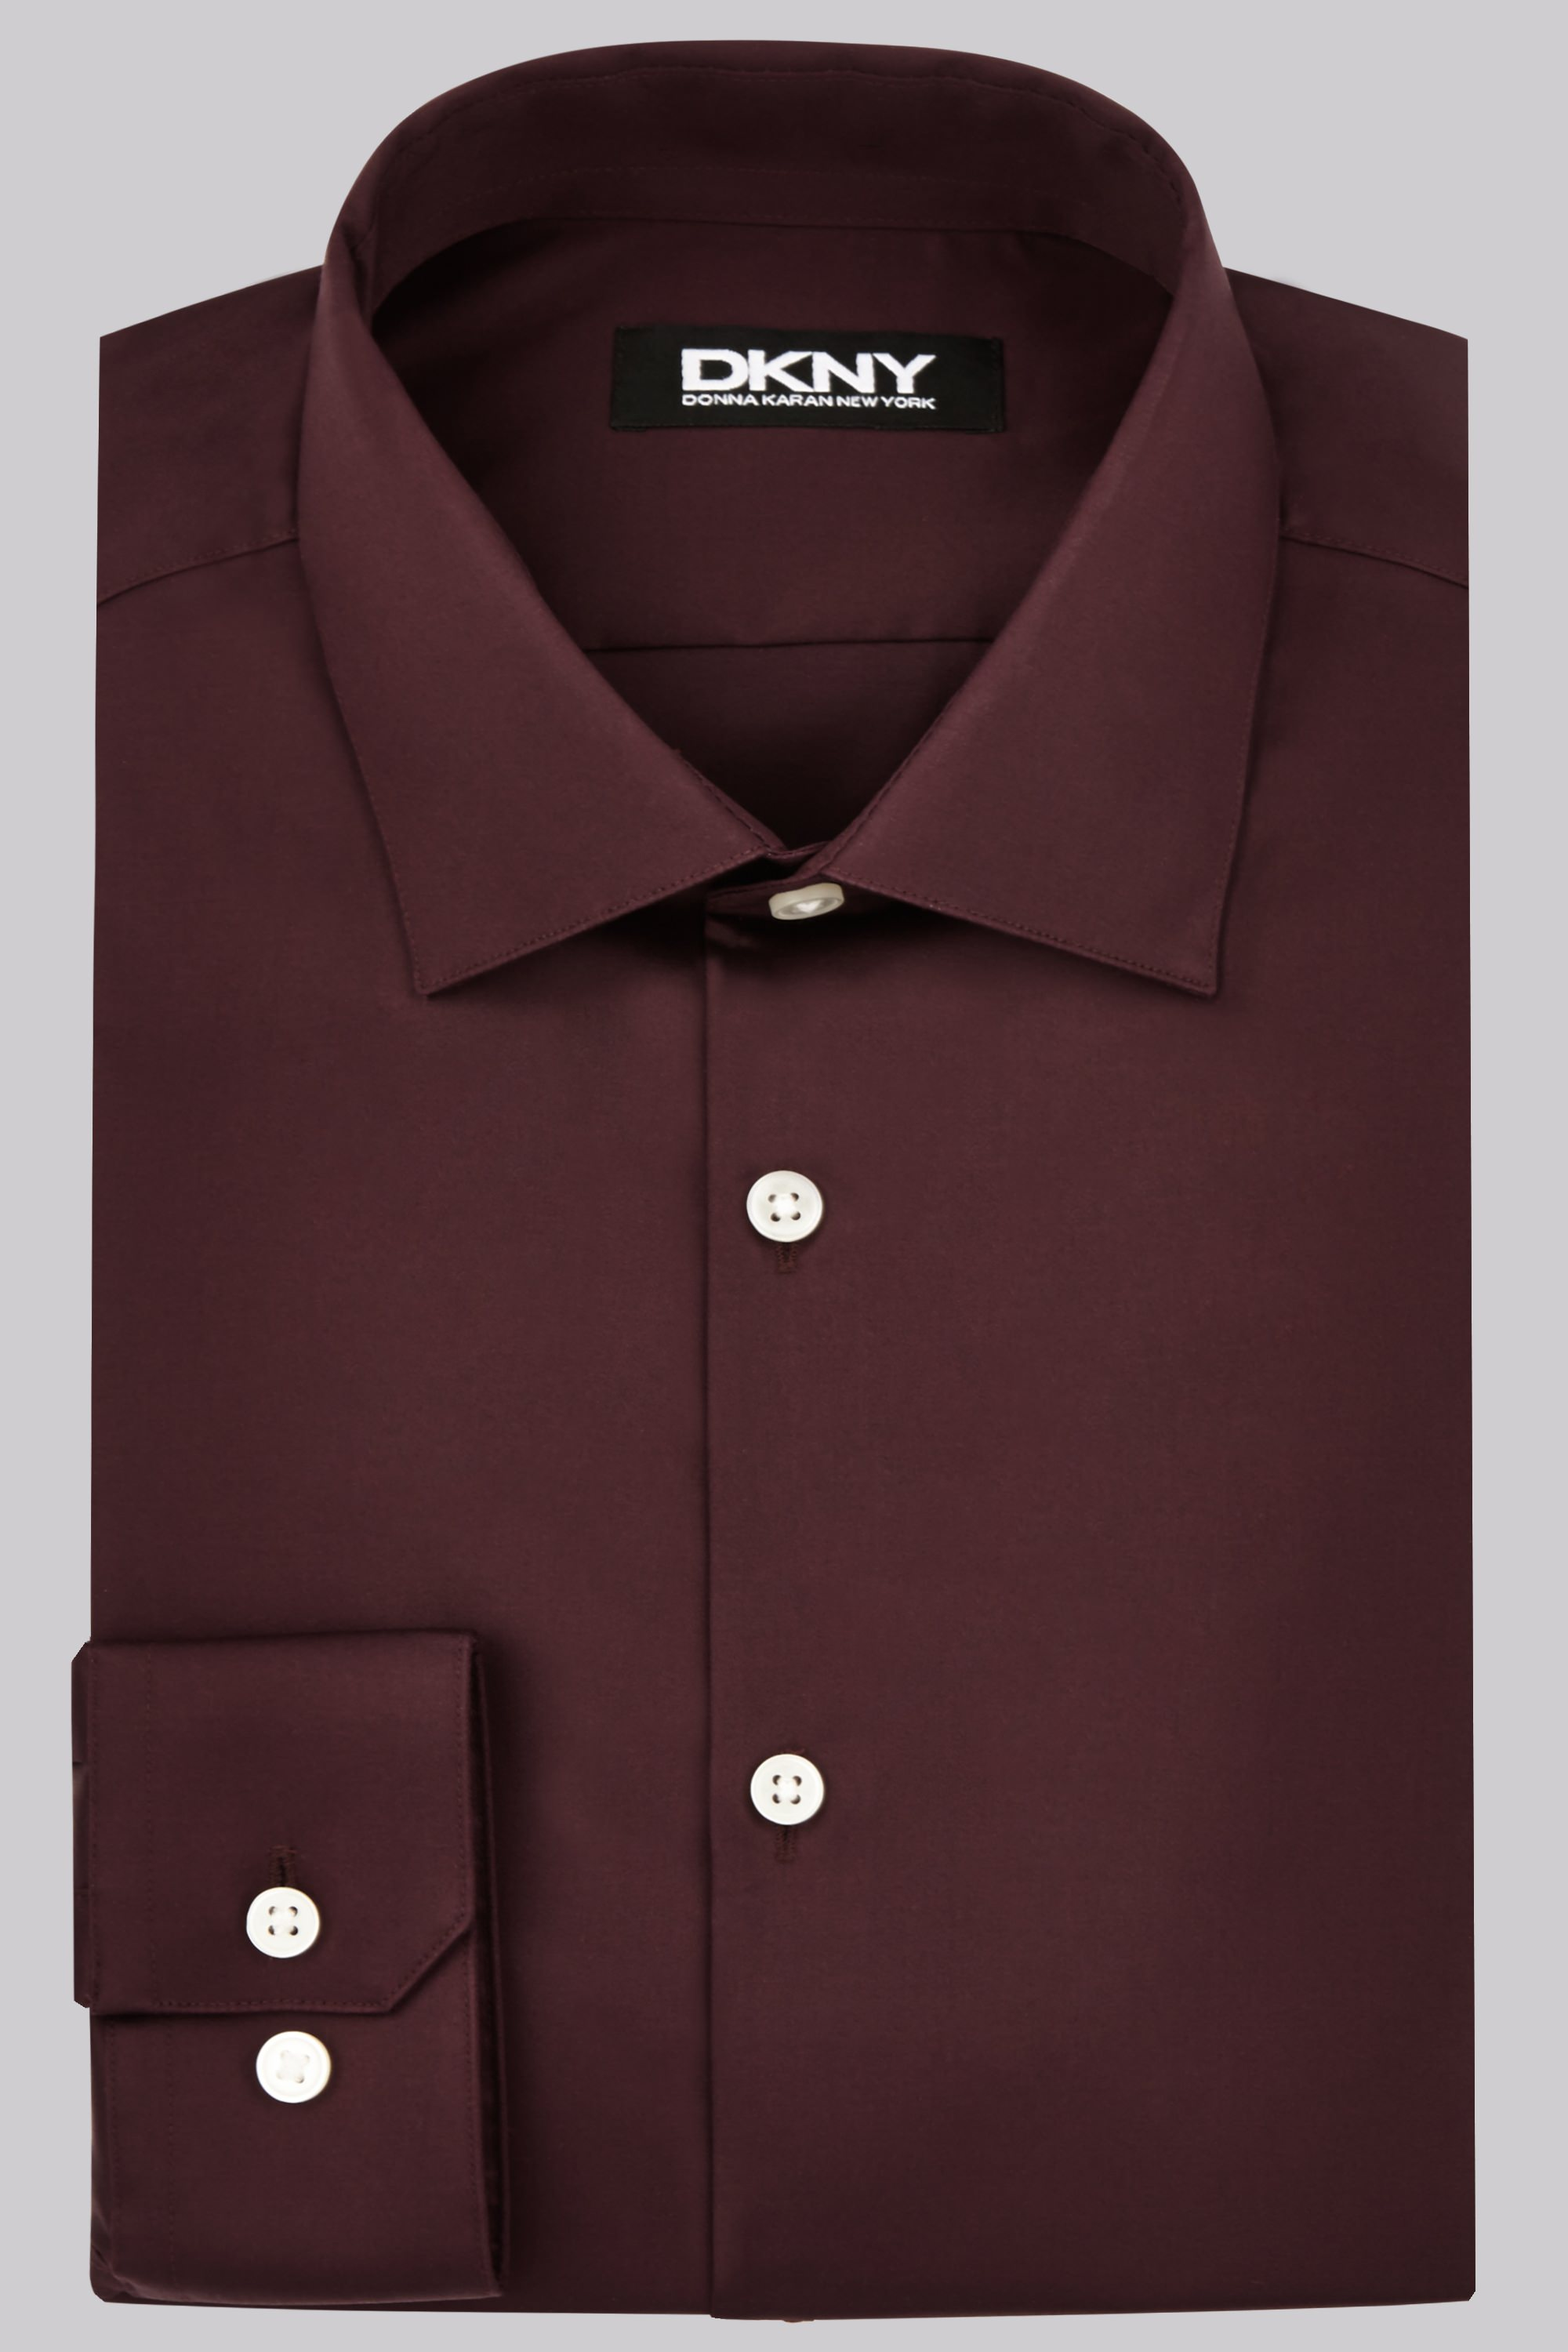 Moss Bros DKNY Slim Fit Burgundy Single Cuff Sateen Shirt